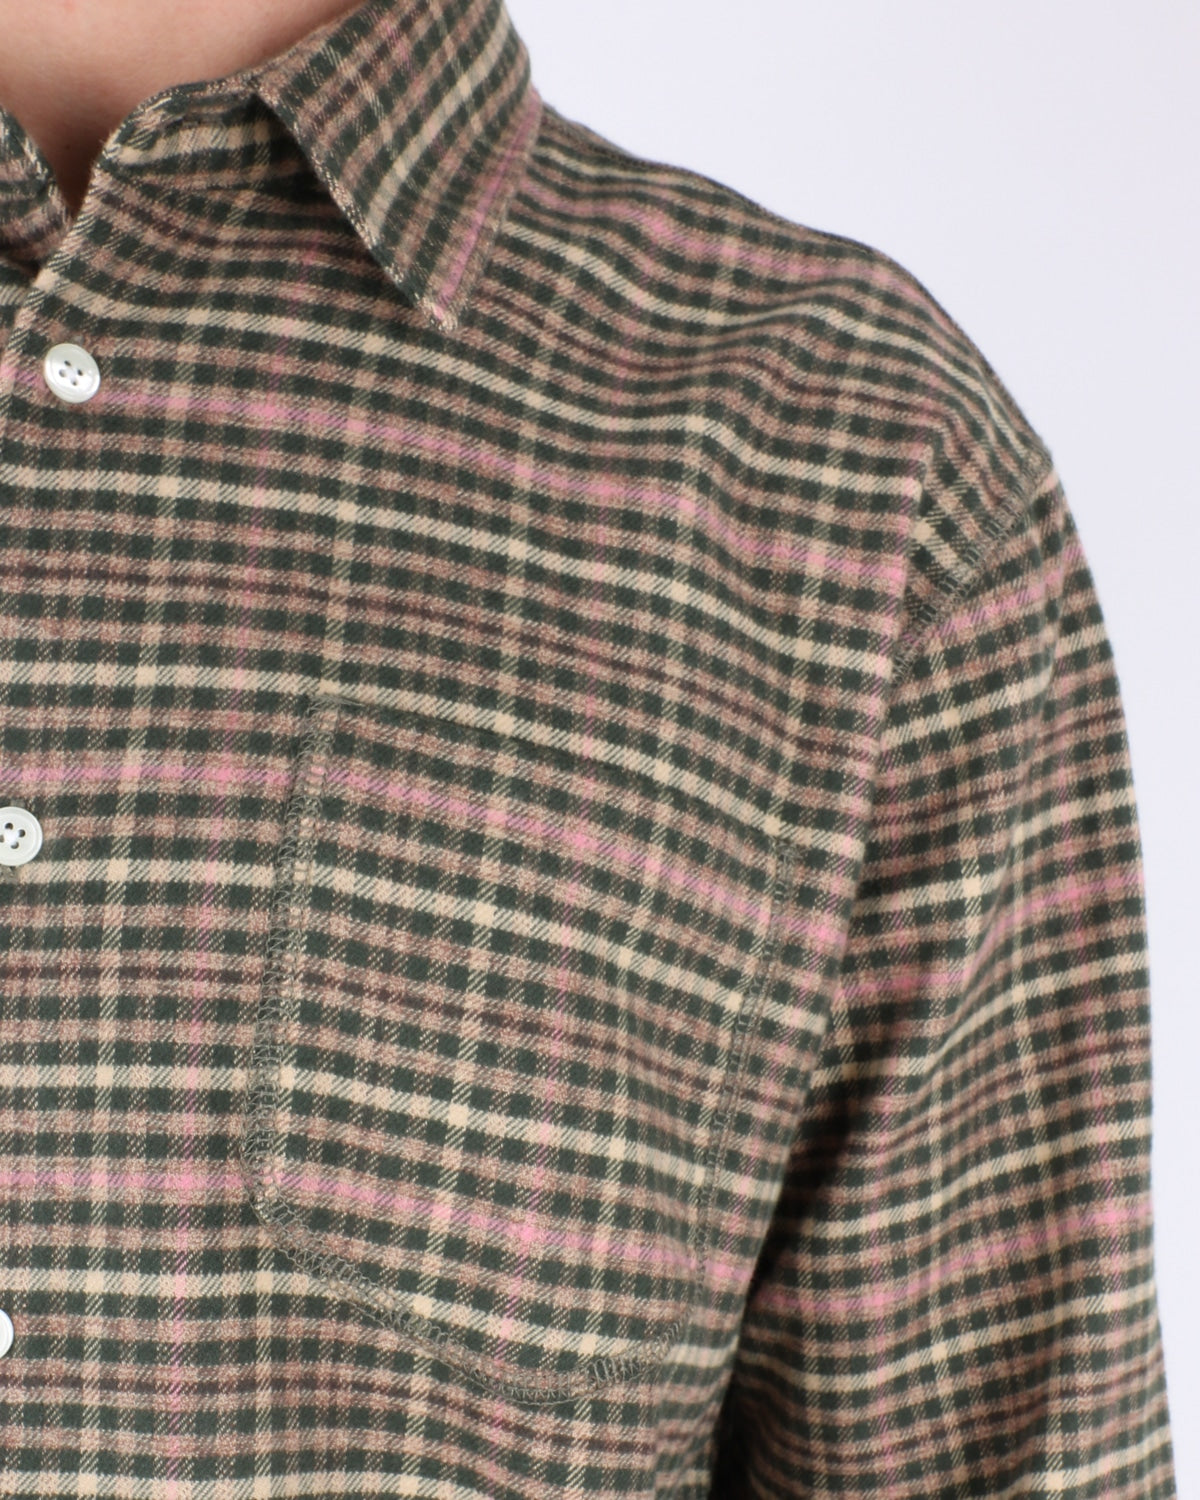 soulland_logan flannell shirt_multi_3_4